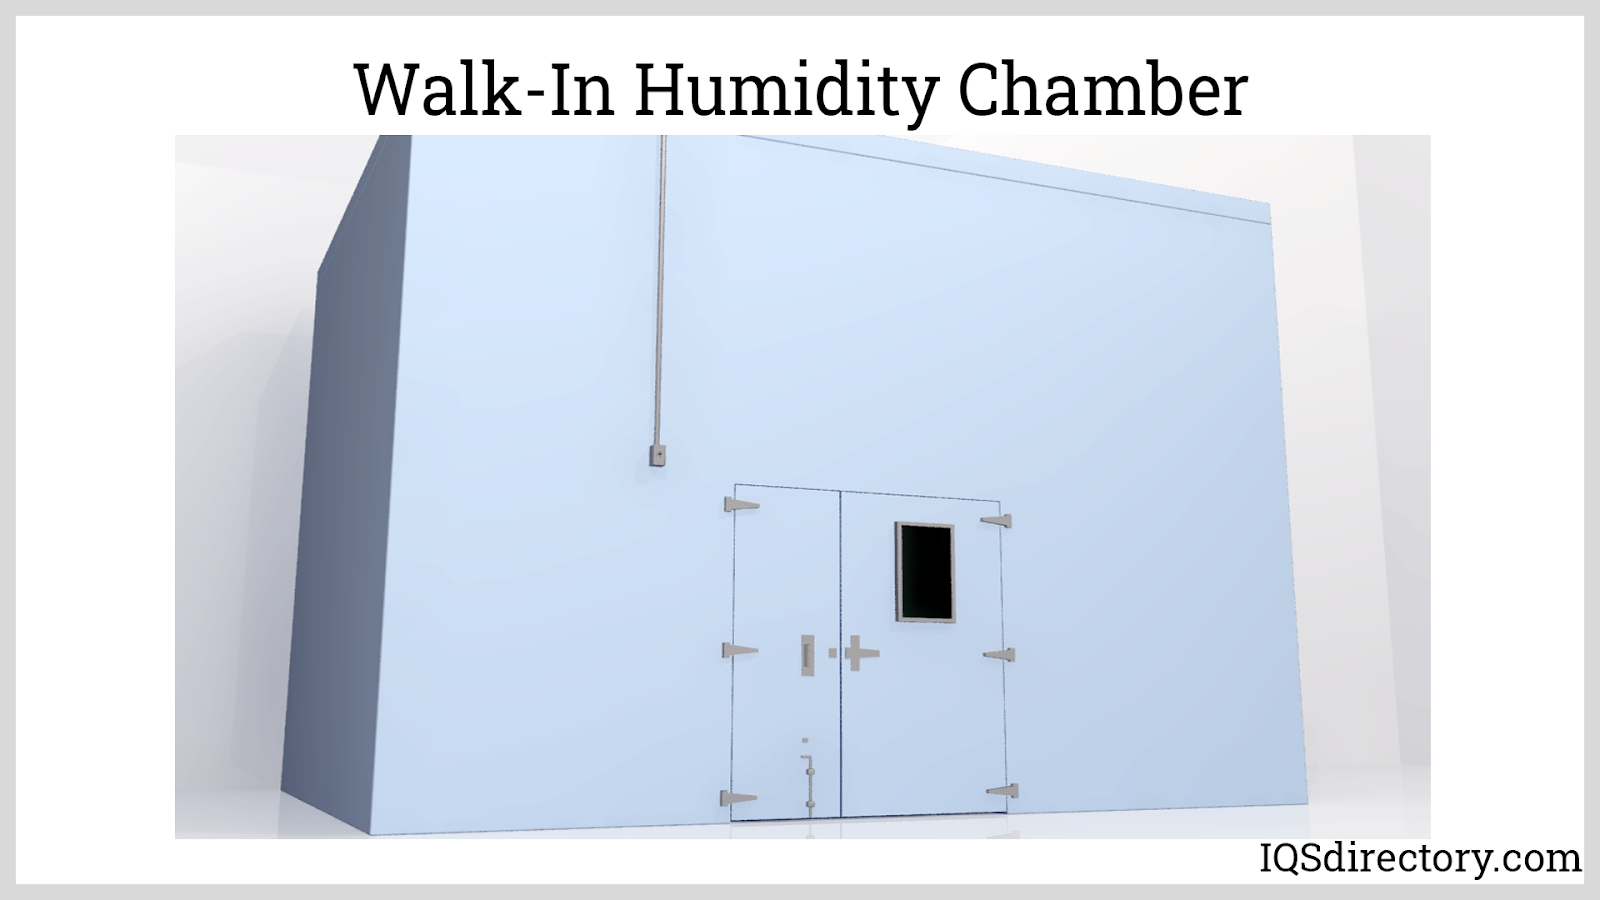 Walk-In Humidity Chamber